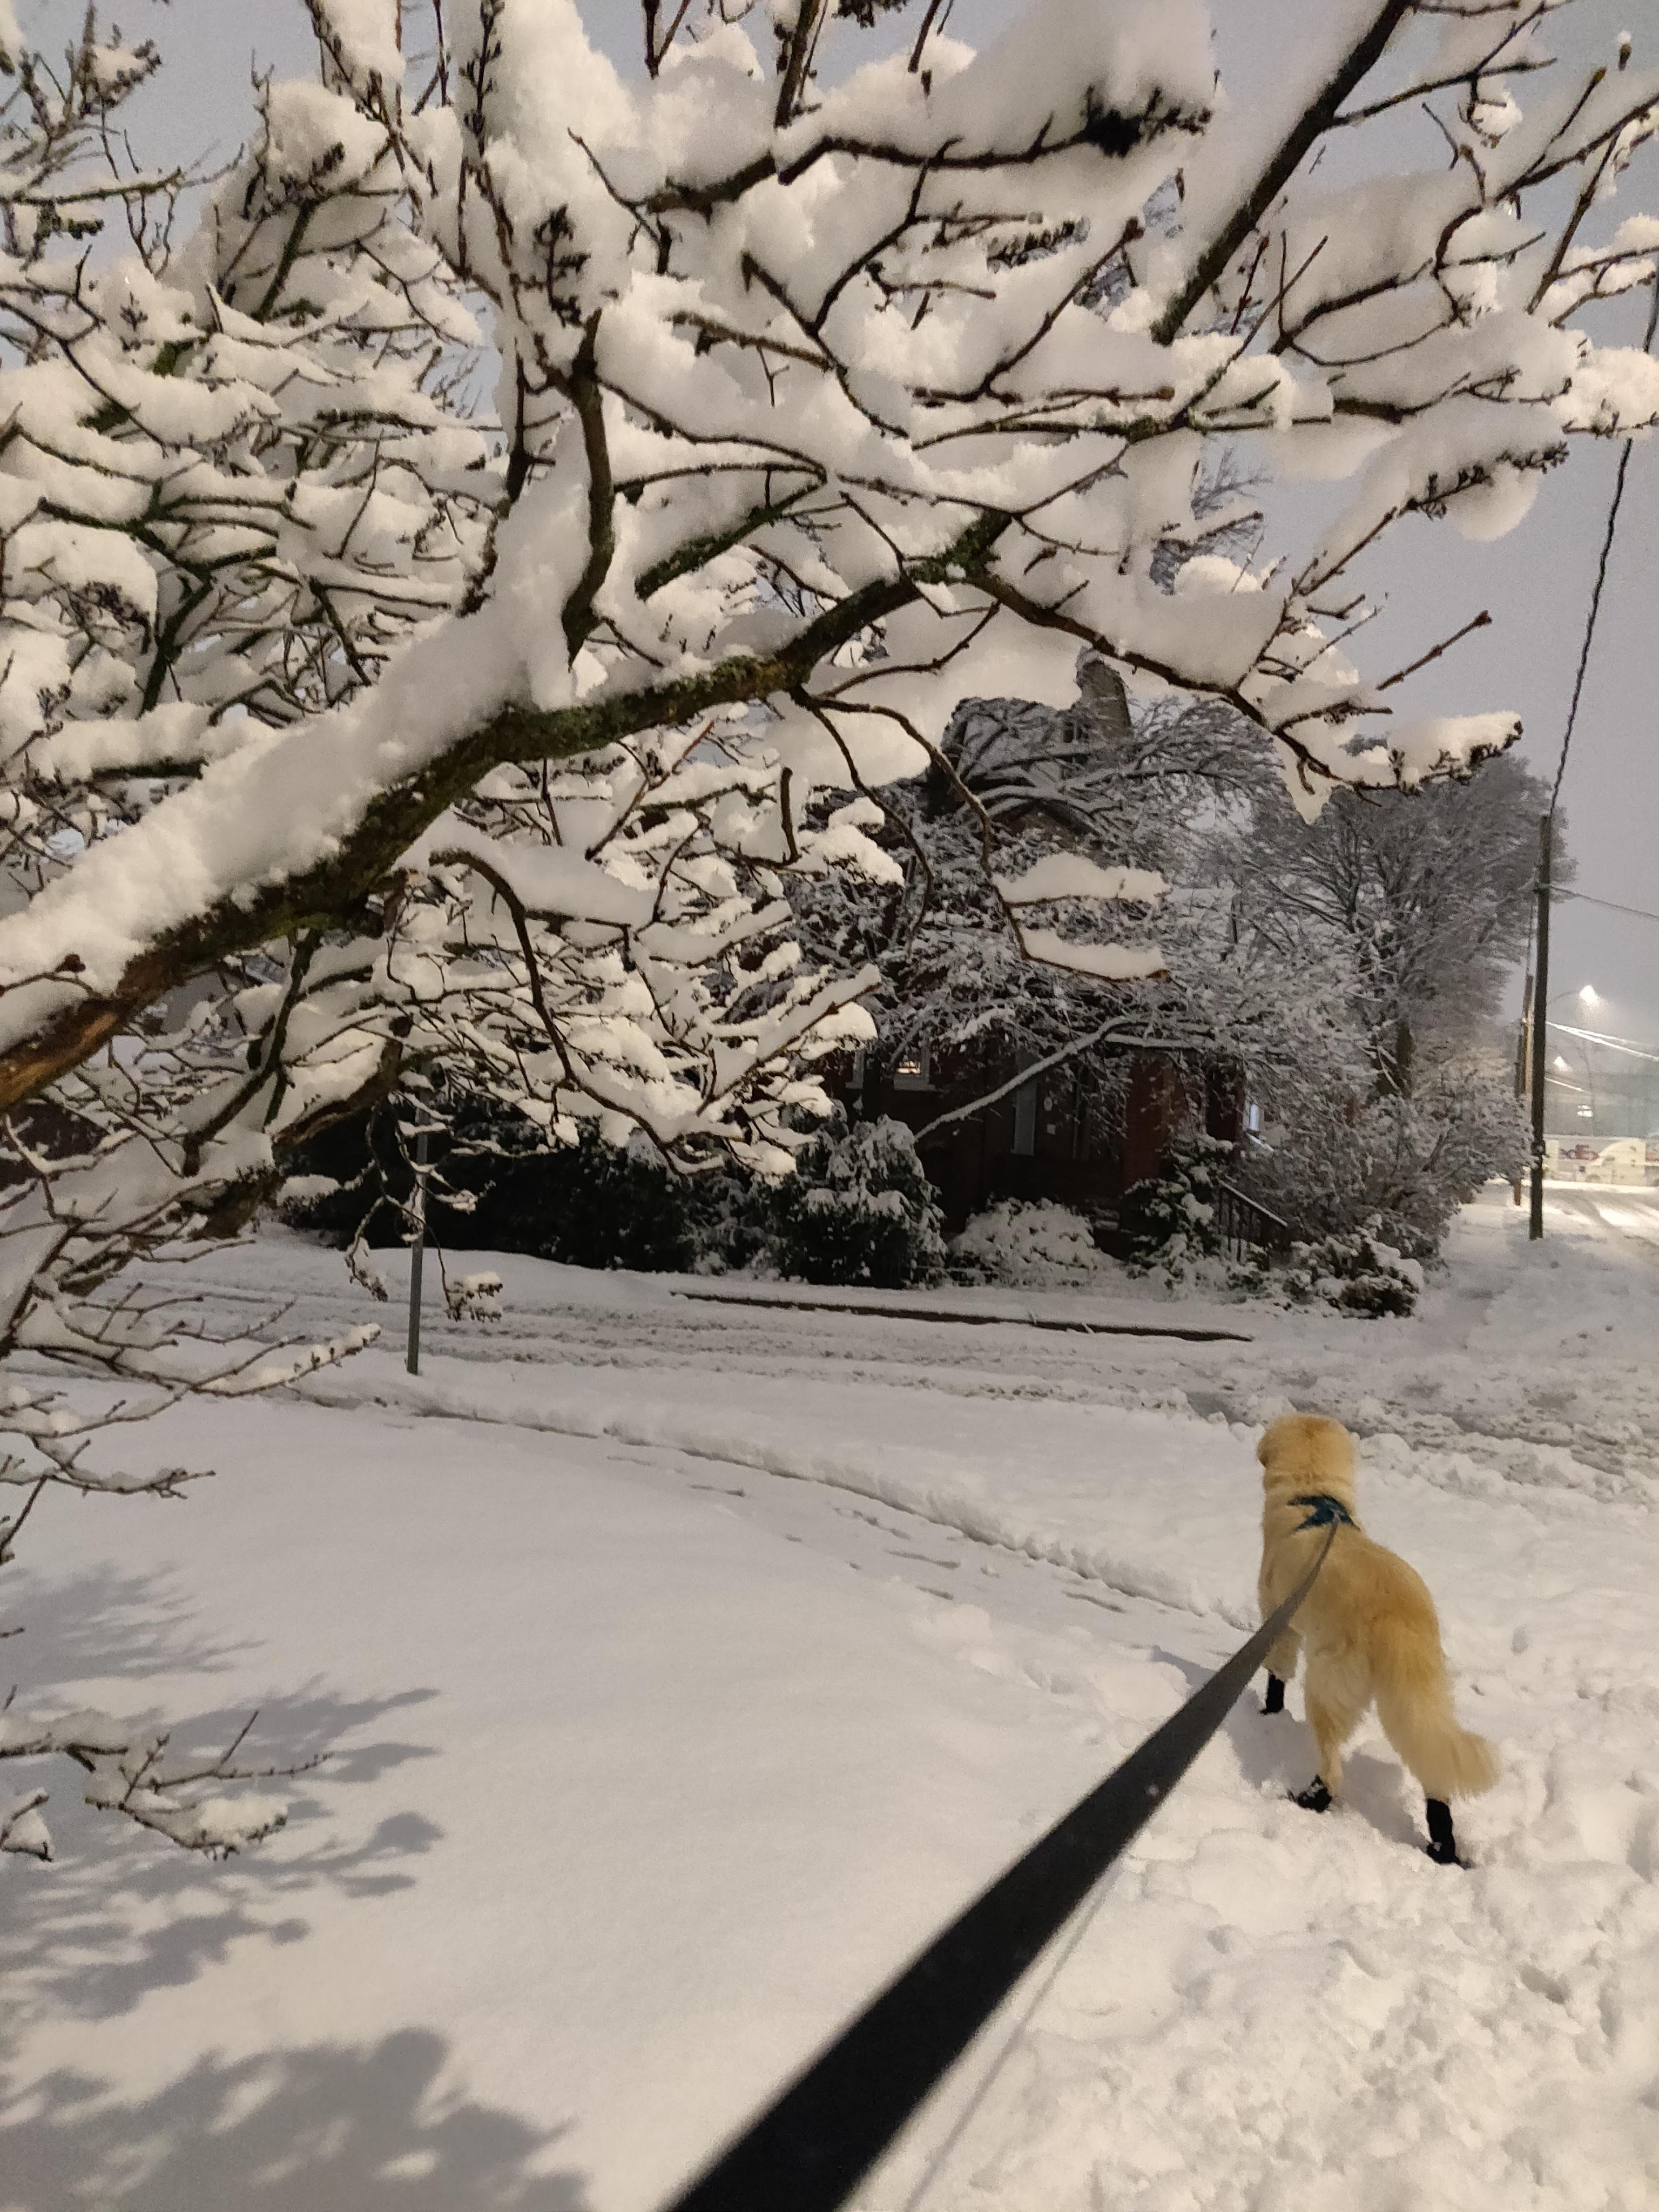 A snowy residential intersection, with a dog at the end of a leash, looking onto the snow-covered street.